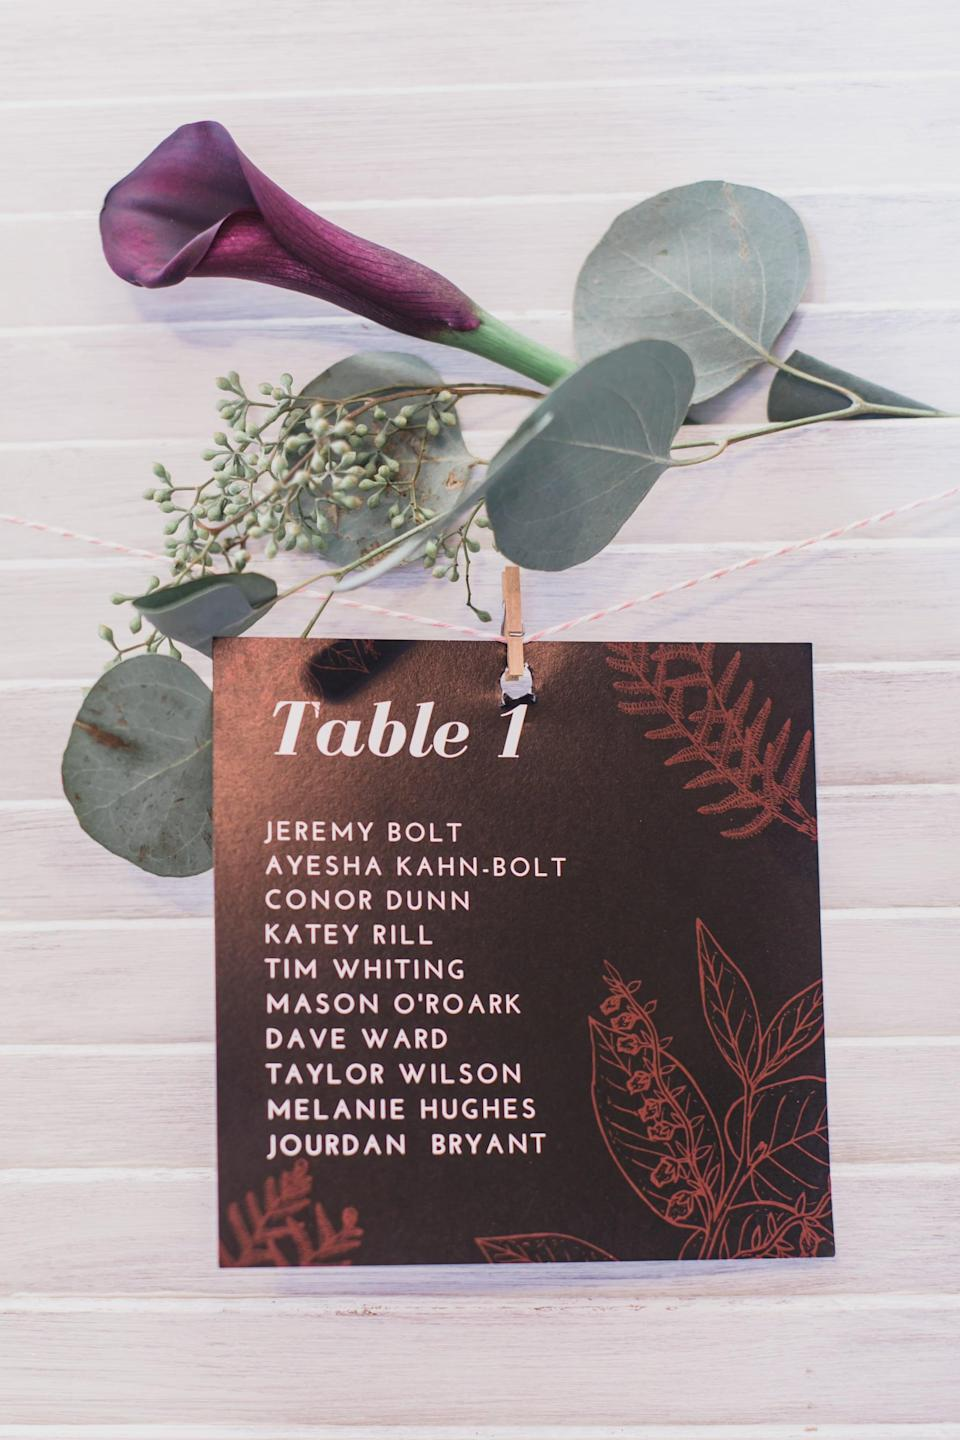 """<p>To make <a class=""""link rapid-noclick-resp"""" href=""""https://www.popsugar.com/latest/DIY"""" rel=""""nofollow noopener"""" target=""""_blank"""" data-ylk=""""slk:DIY"""">DIY</a> table cards, simply print out pieces of paper with everyone's names on them (or handwrite them), find little clothespins and attach the paper to a piece of string, and hang the cards at each table.</p>"""